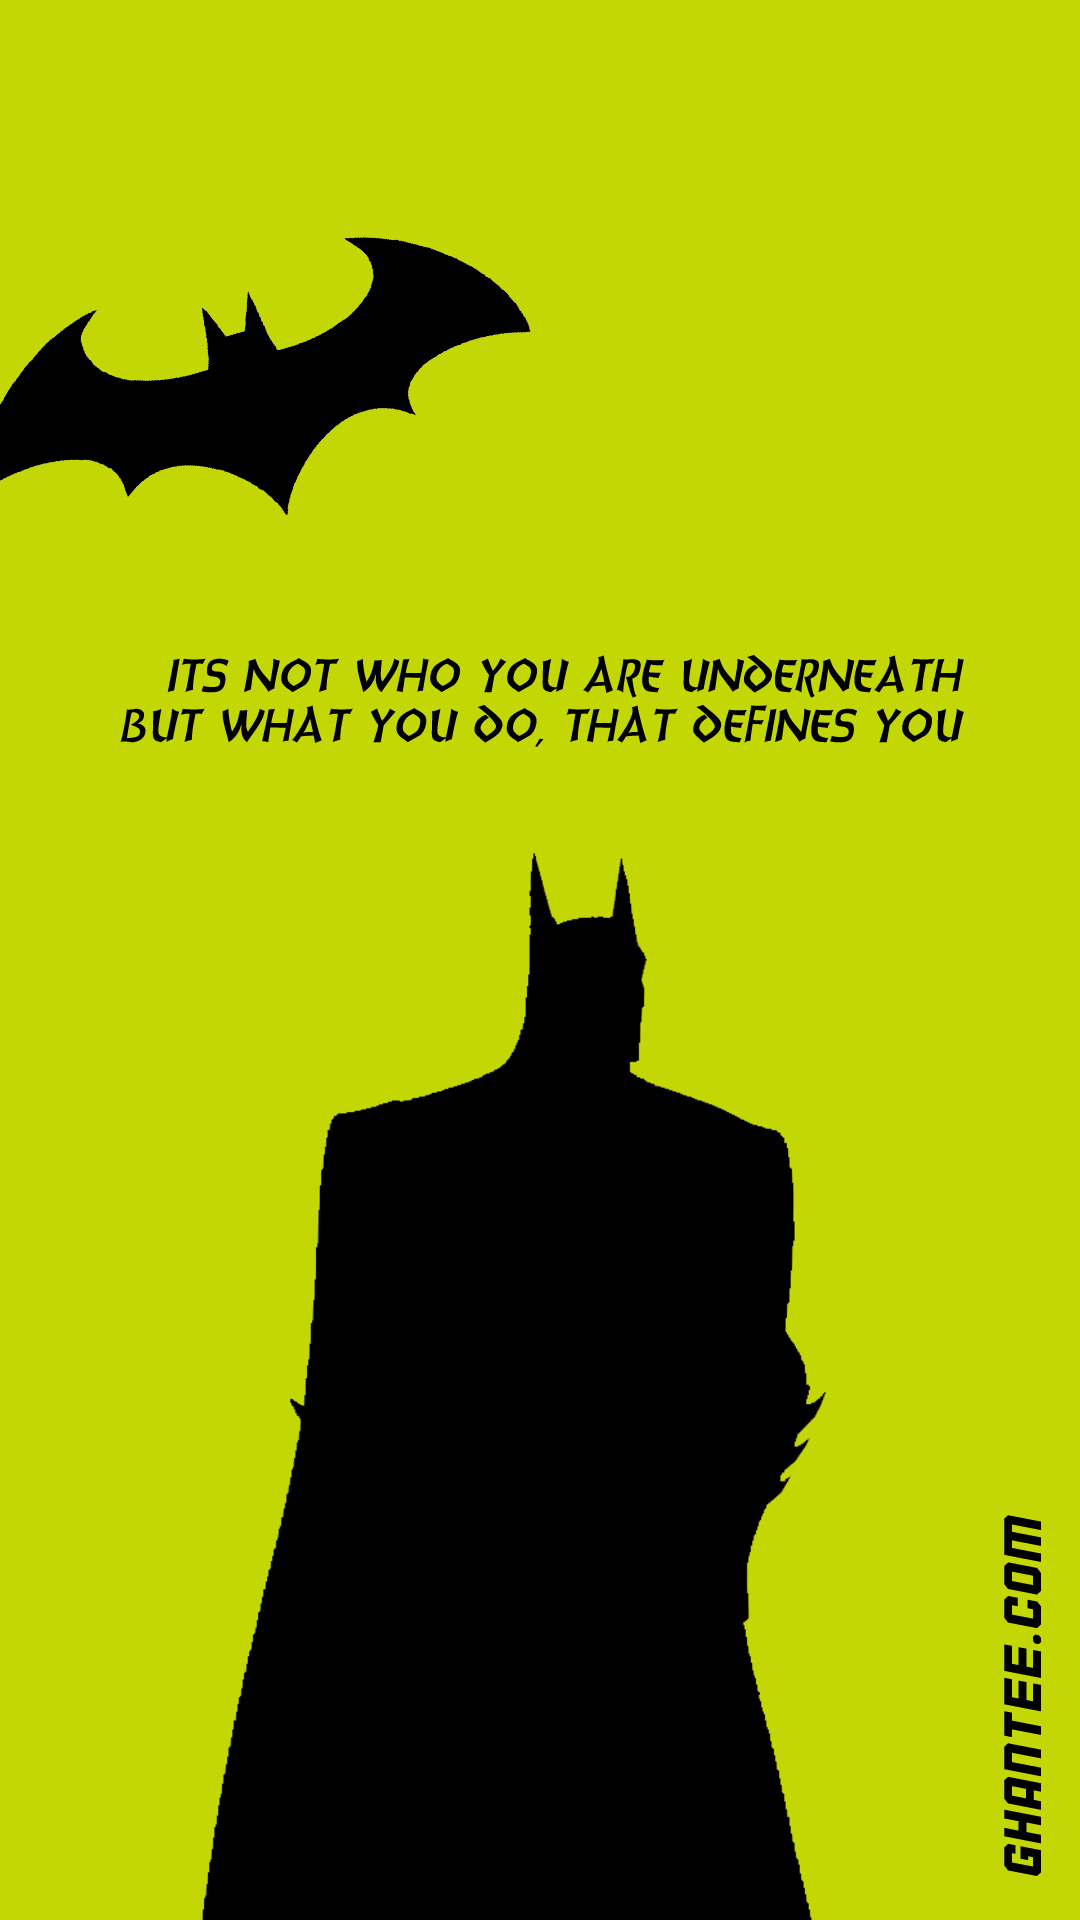 batman quote hd phone wallpaper | 1080×1920